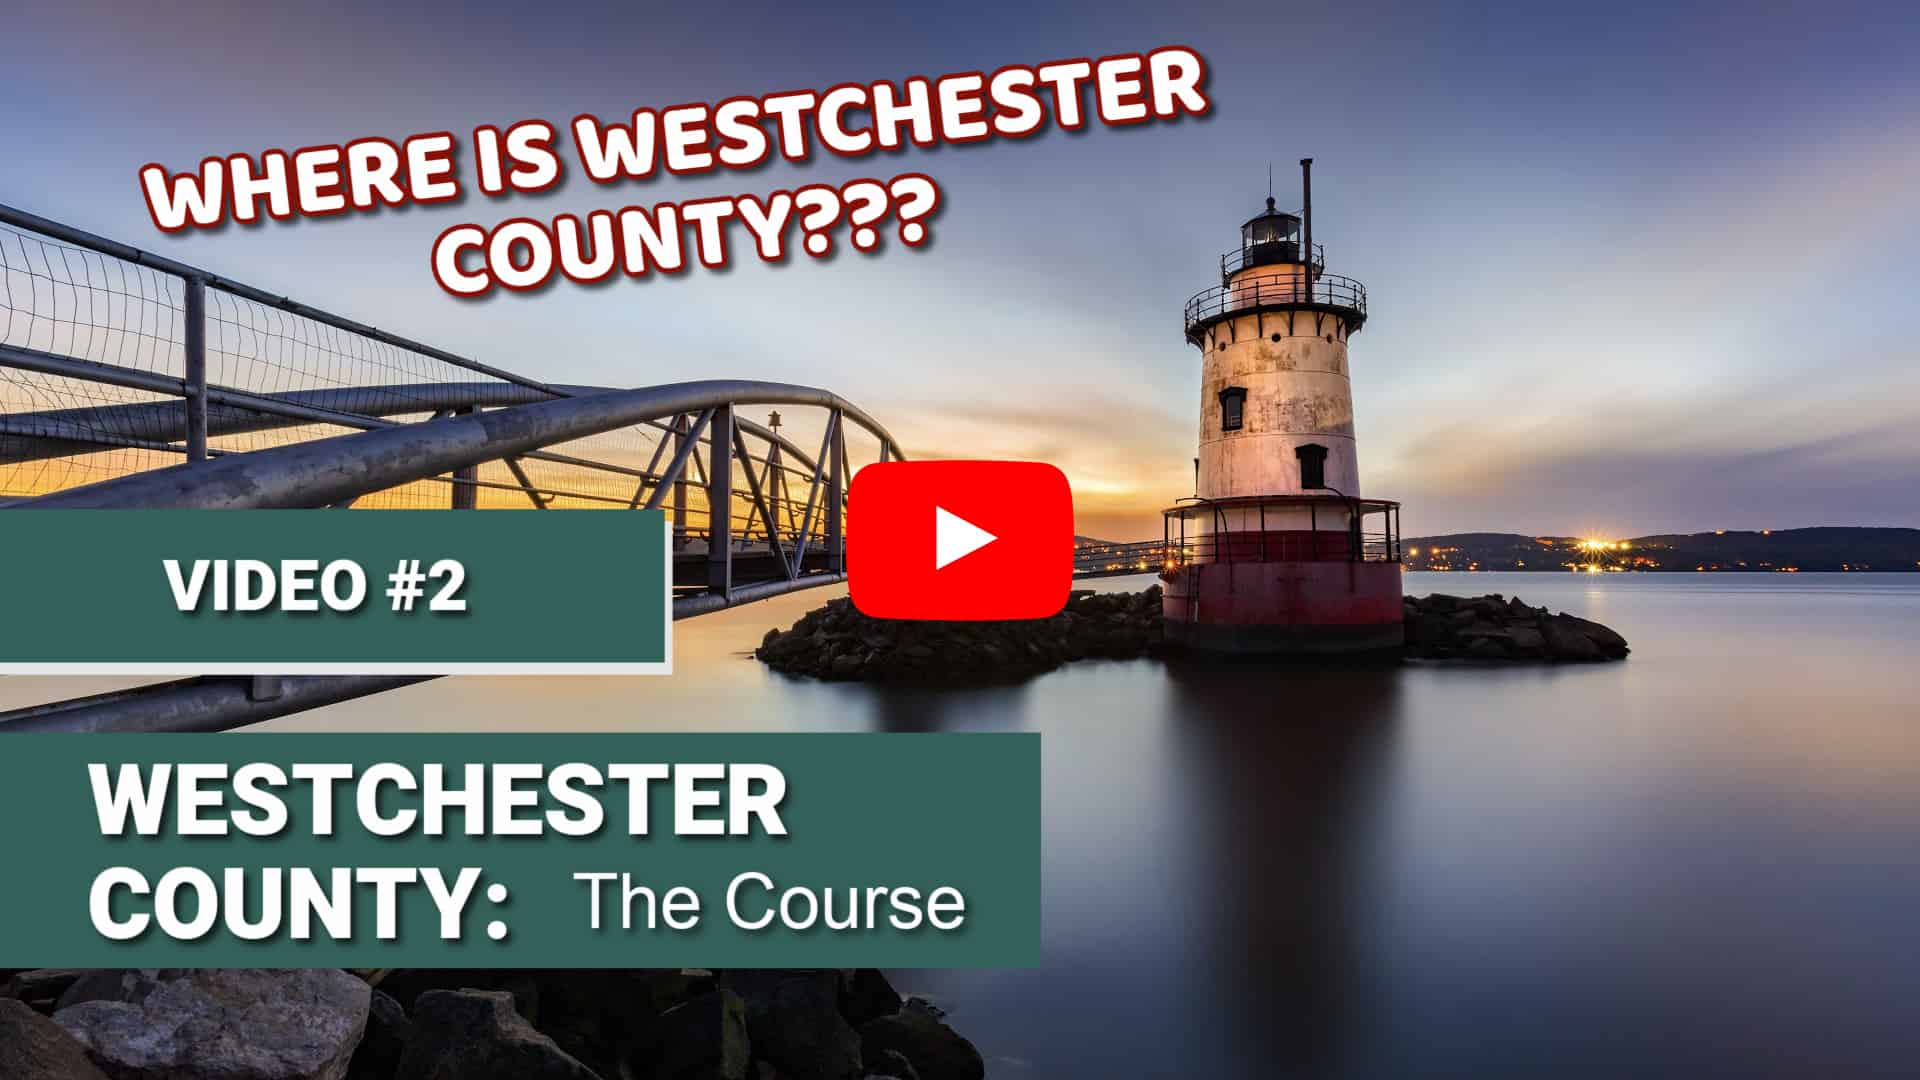 Where is westchester county? This second video in this free mini-course explains exactly where Westchester County is located.